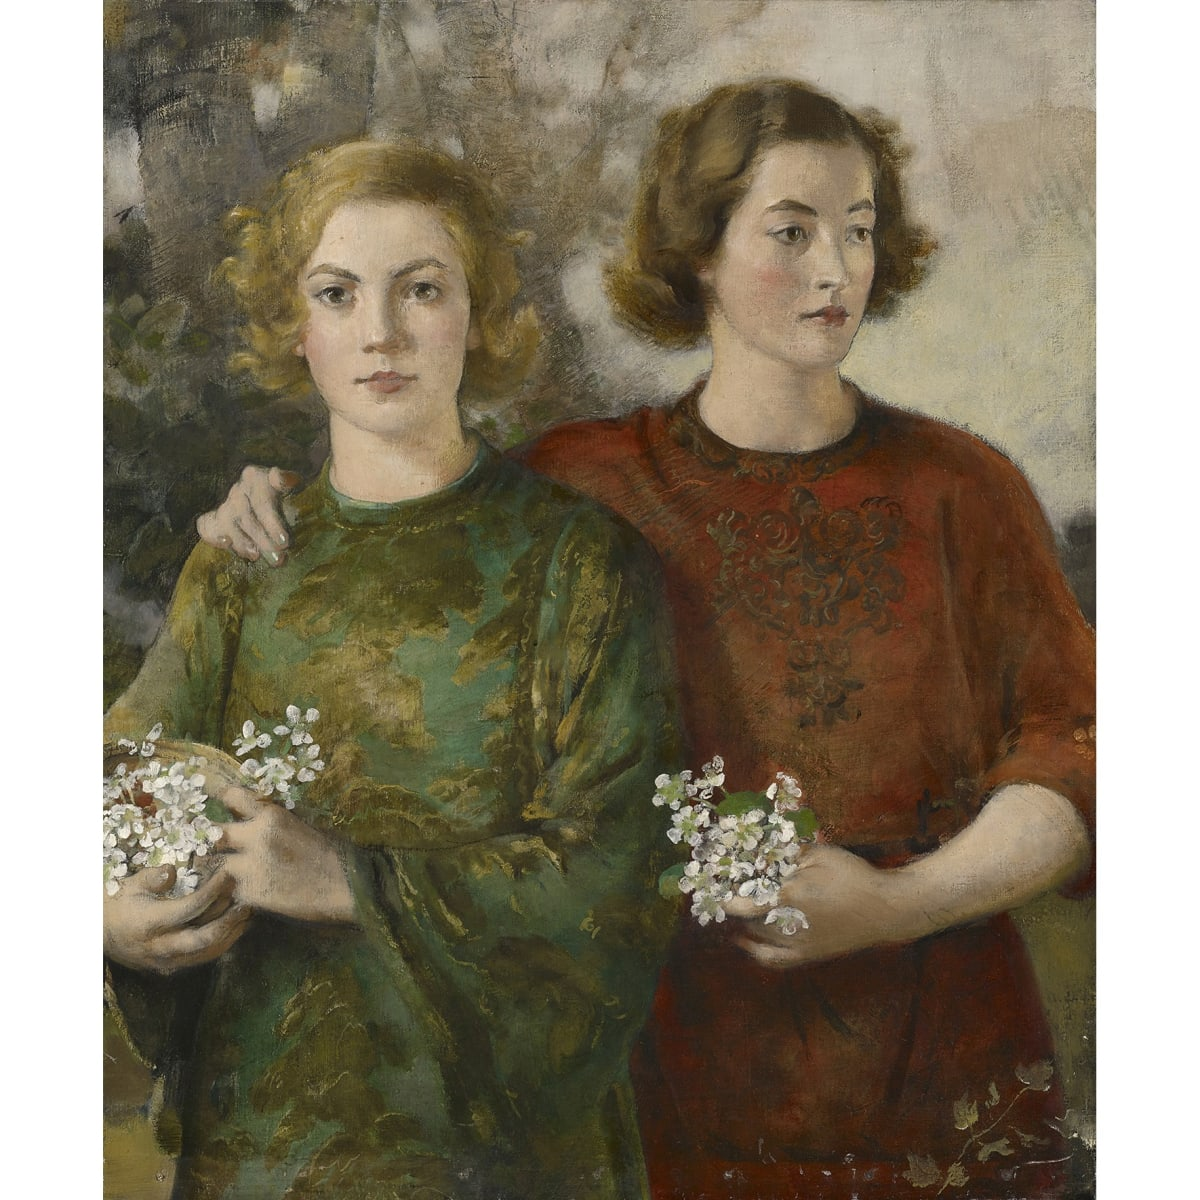 John Henry Lintott The sisters oil on canvas 40 x 25 inches